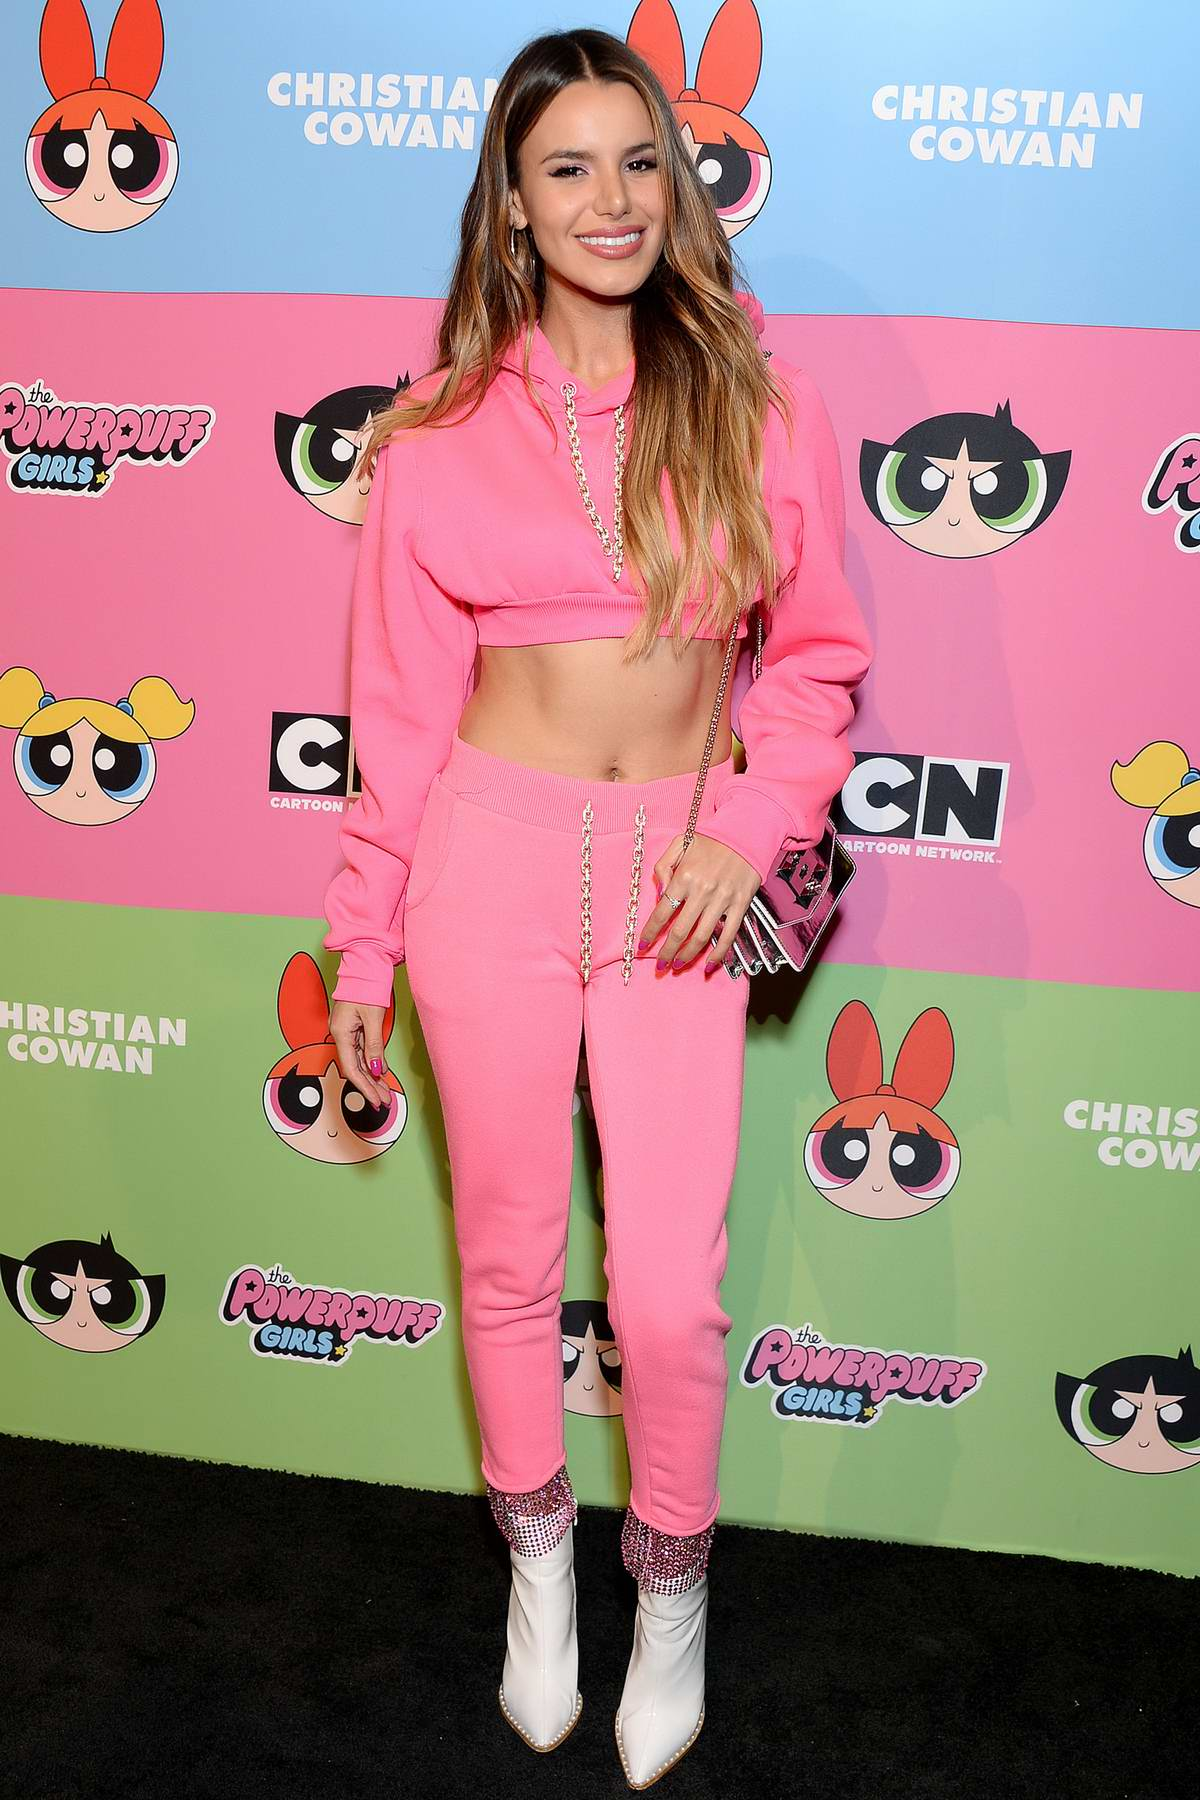 Madison Reed attends Christian Cowan x Powerpuff Girls Runway Show in Los Angeles